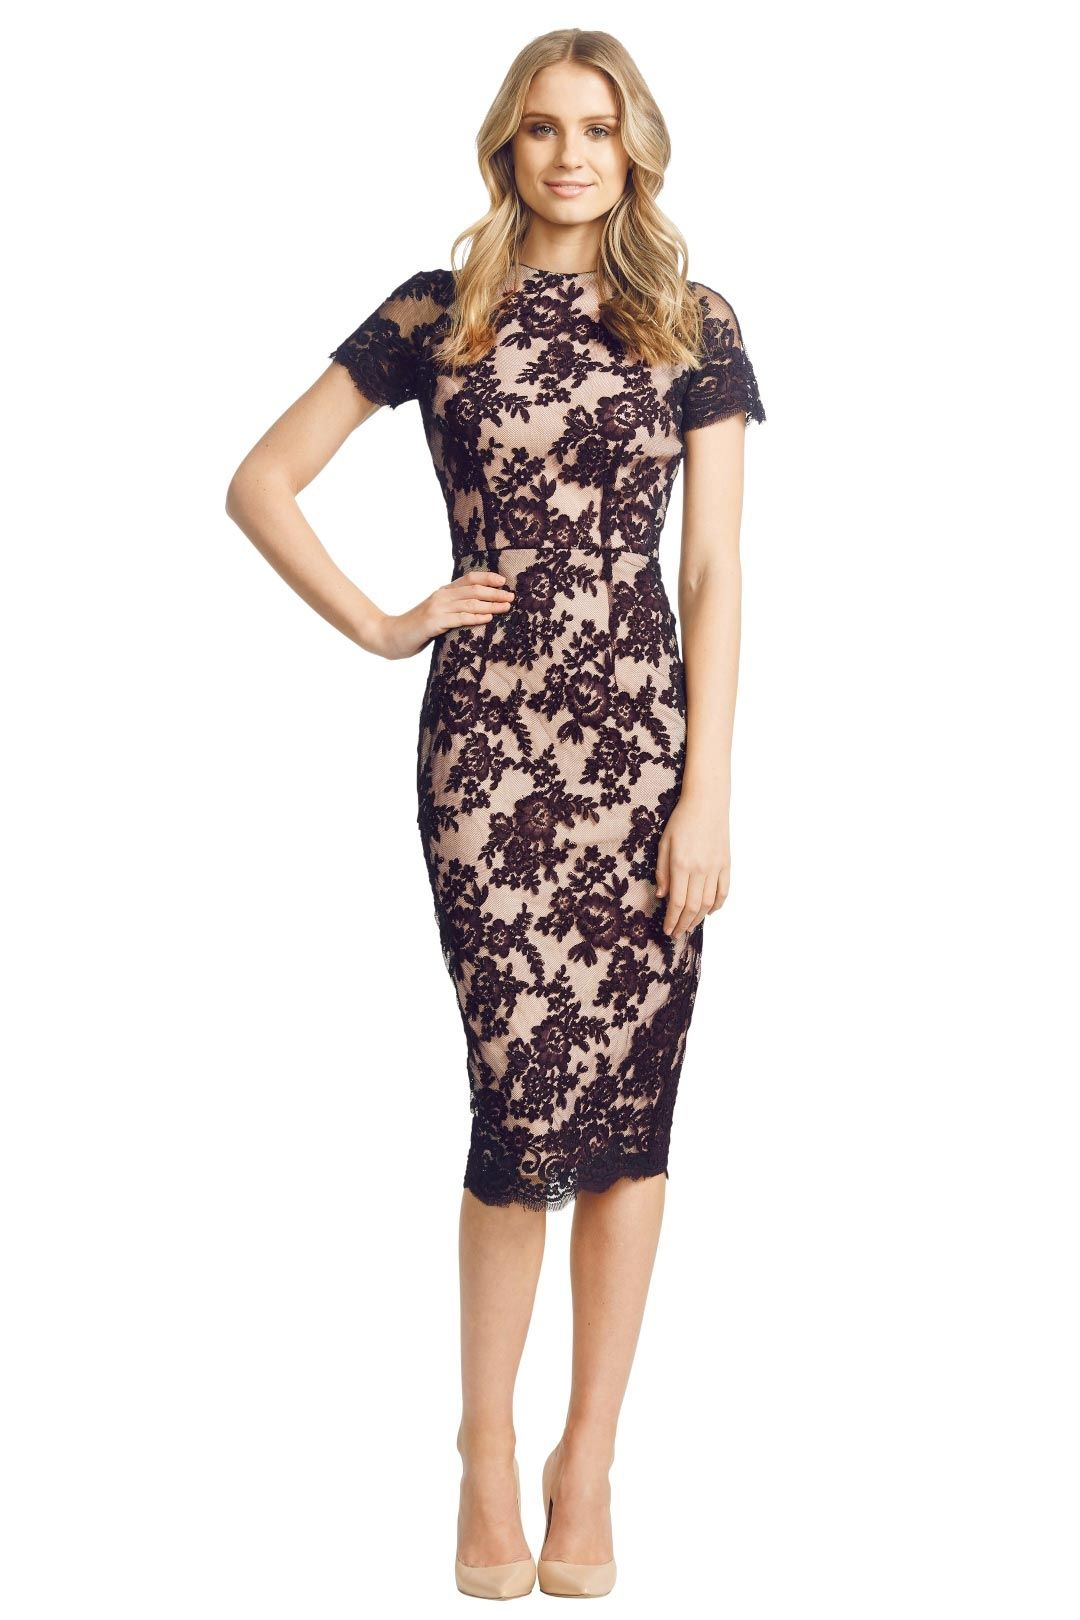 Alex Perry - Francoise Dress - Black - Front